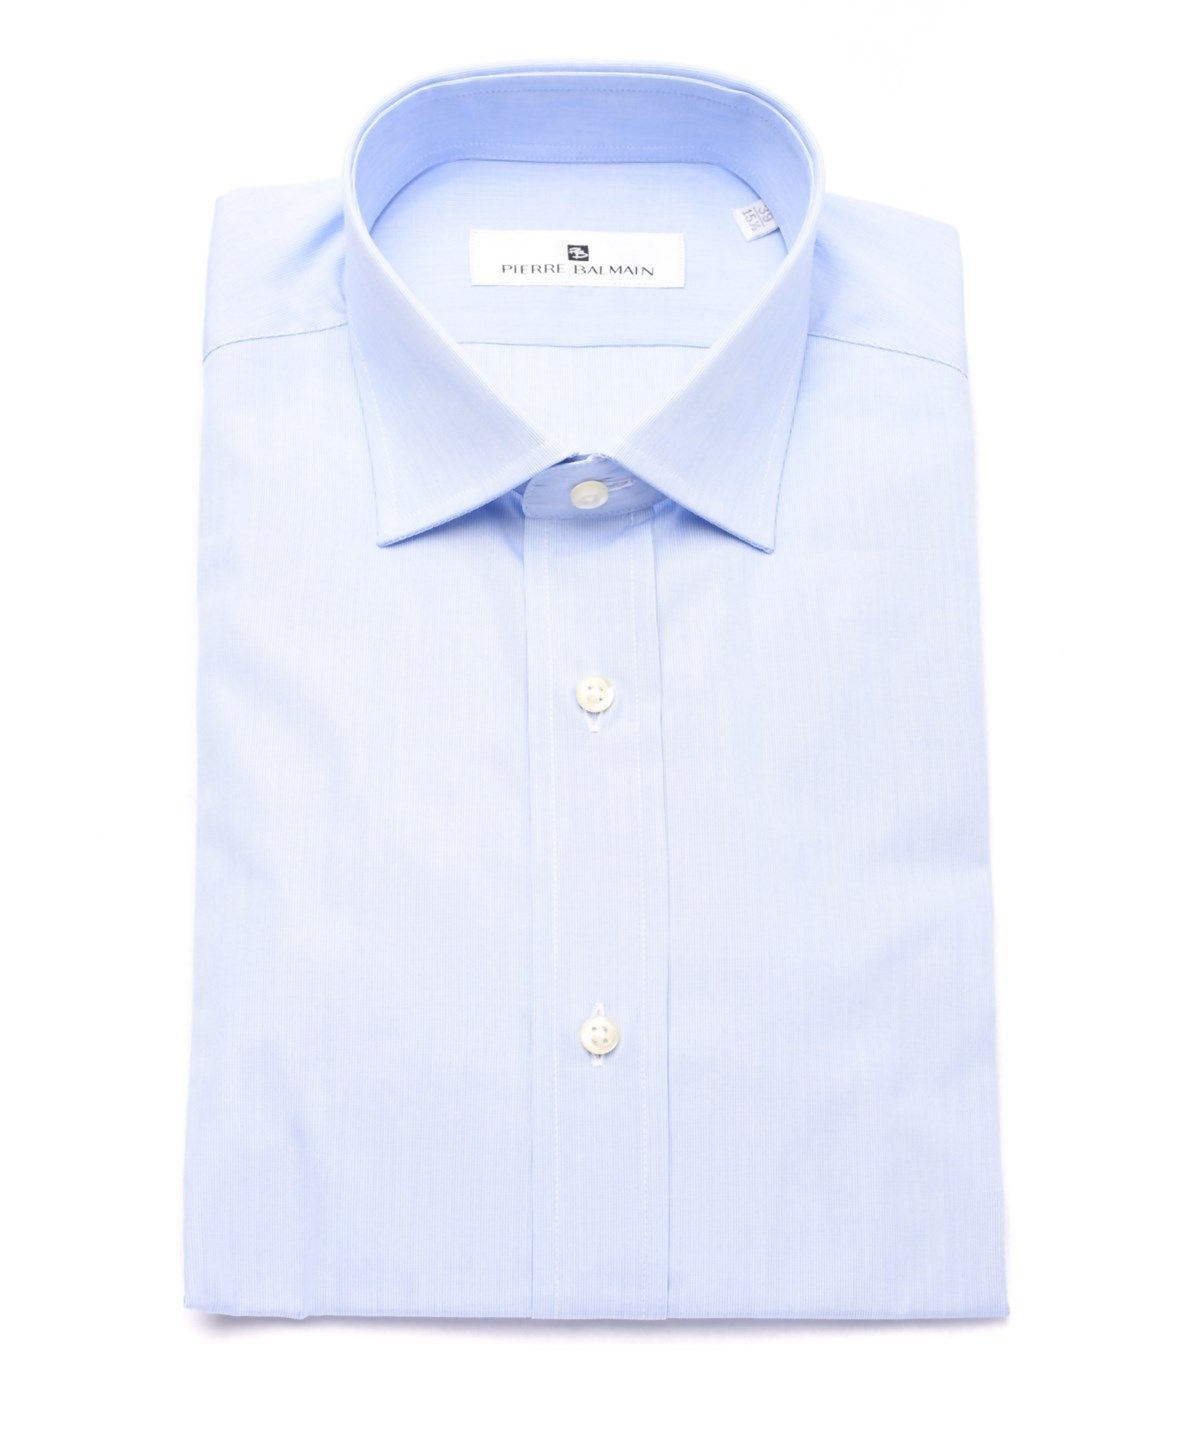 Fitted long sleeve dress shirts